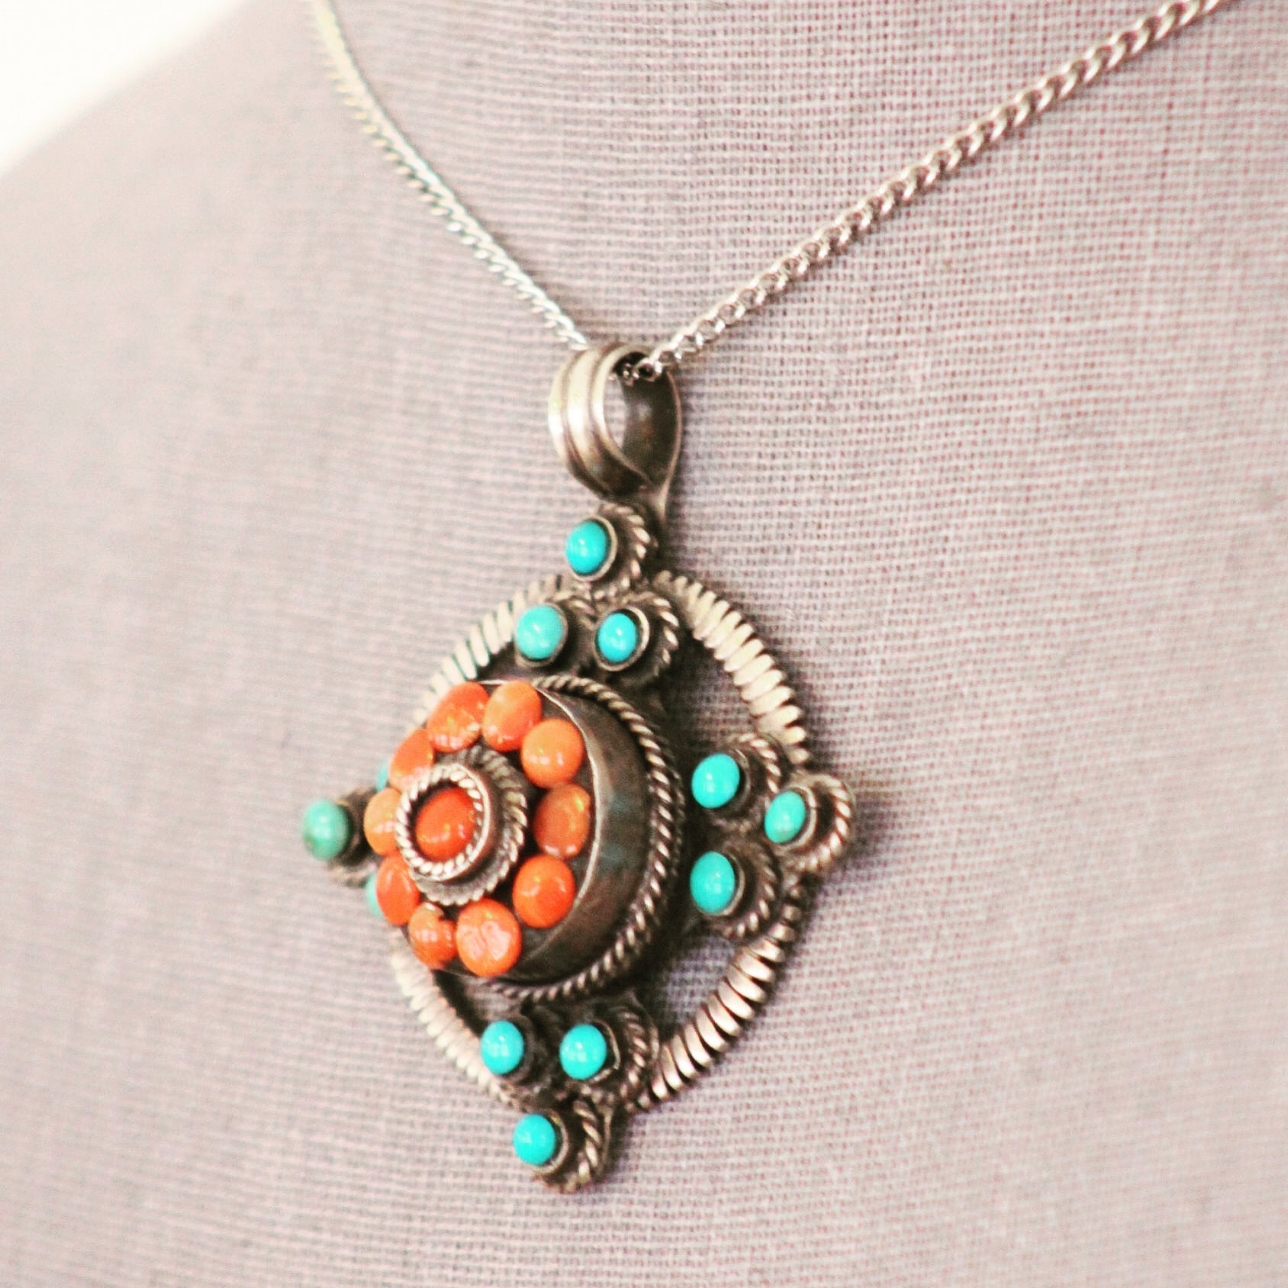 Turquoise and Coral Pendant, Old World Kashmiri style by IntiShanti